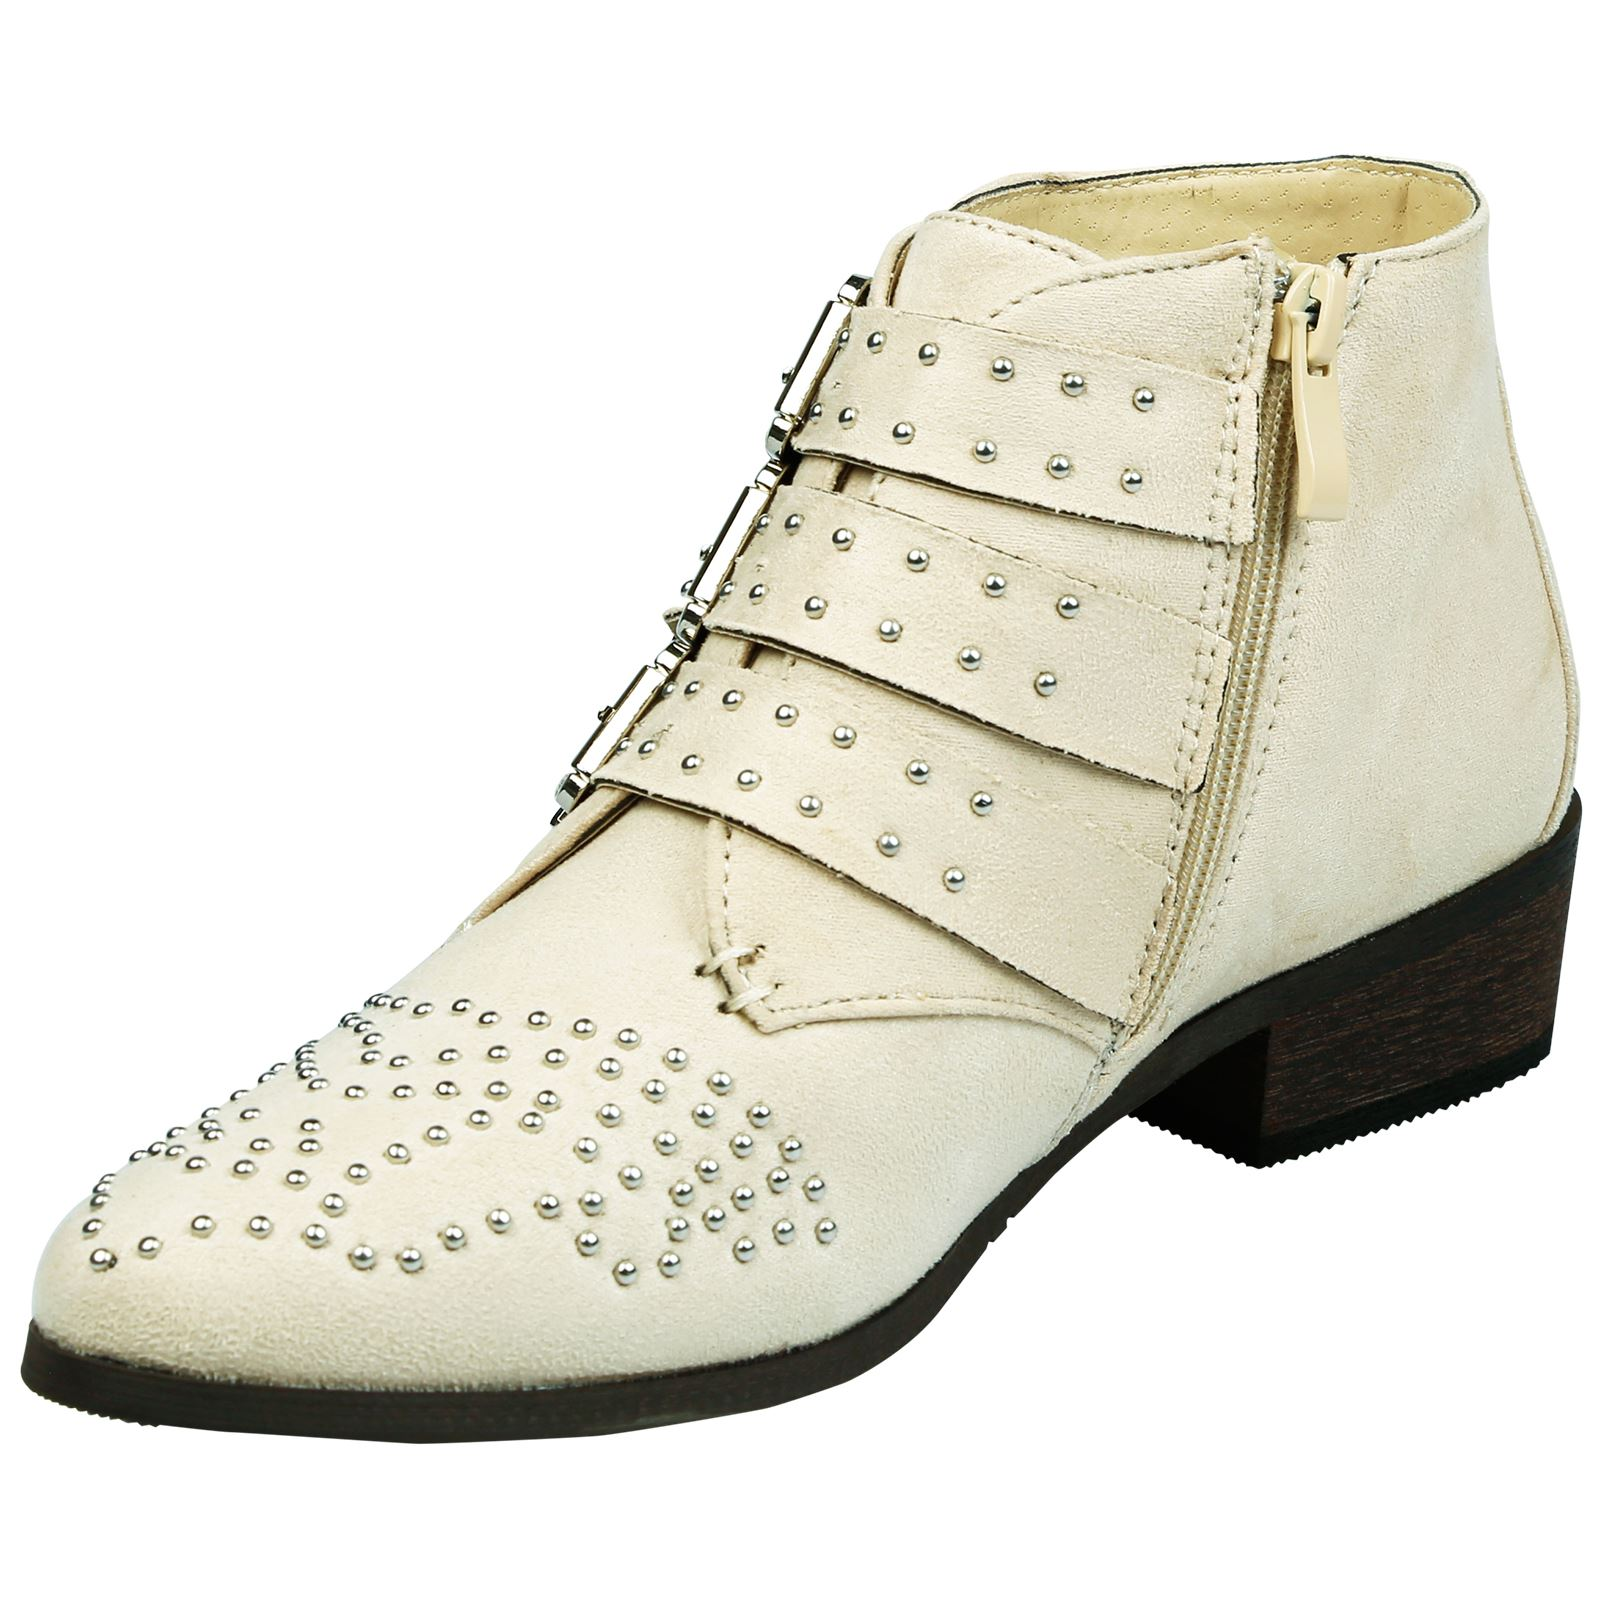 Liv-Womens-Flats-Low-Heels-Buckle-Strappy-Biker-Ankle-Boots-Ladies-Shoes-Studded thumbnail 4